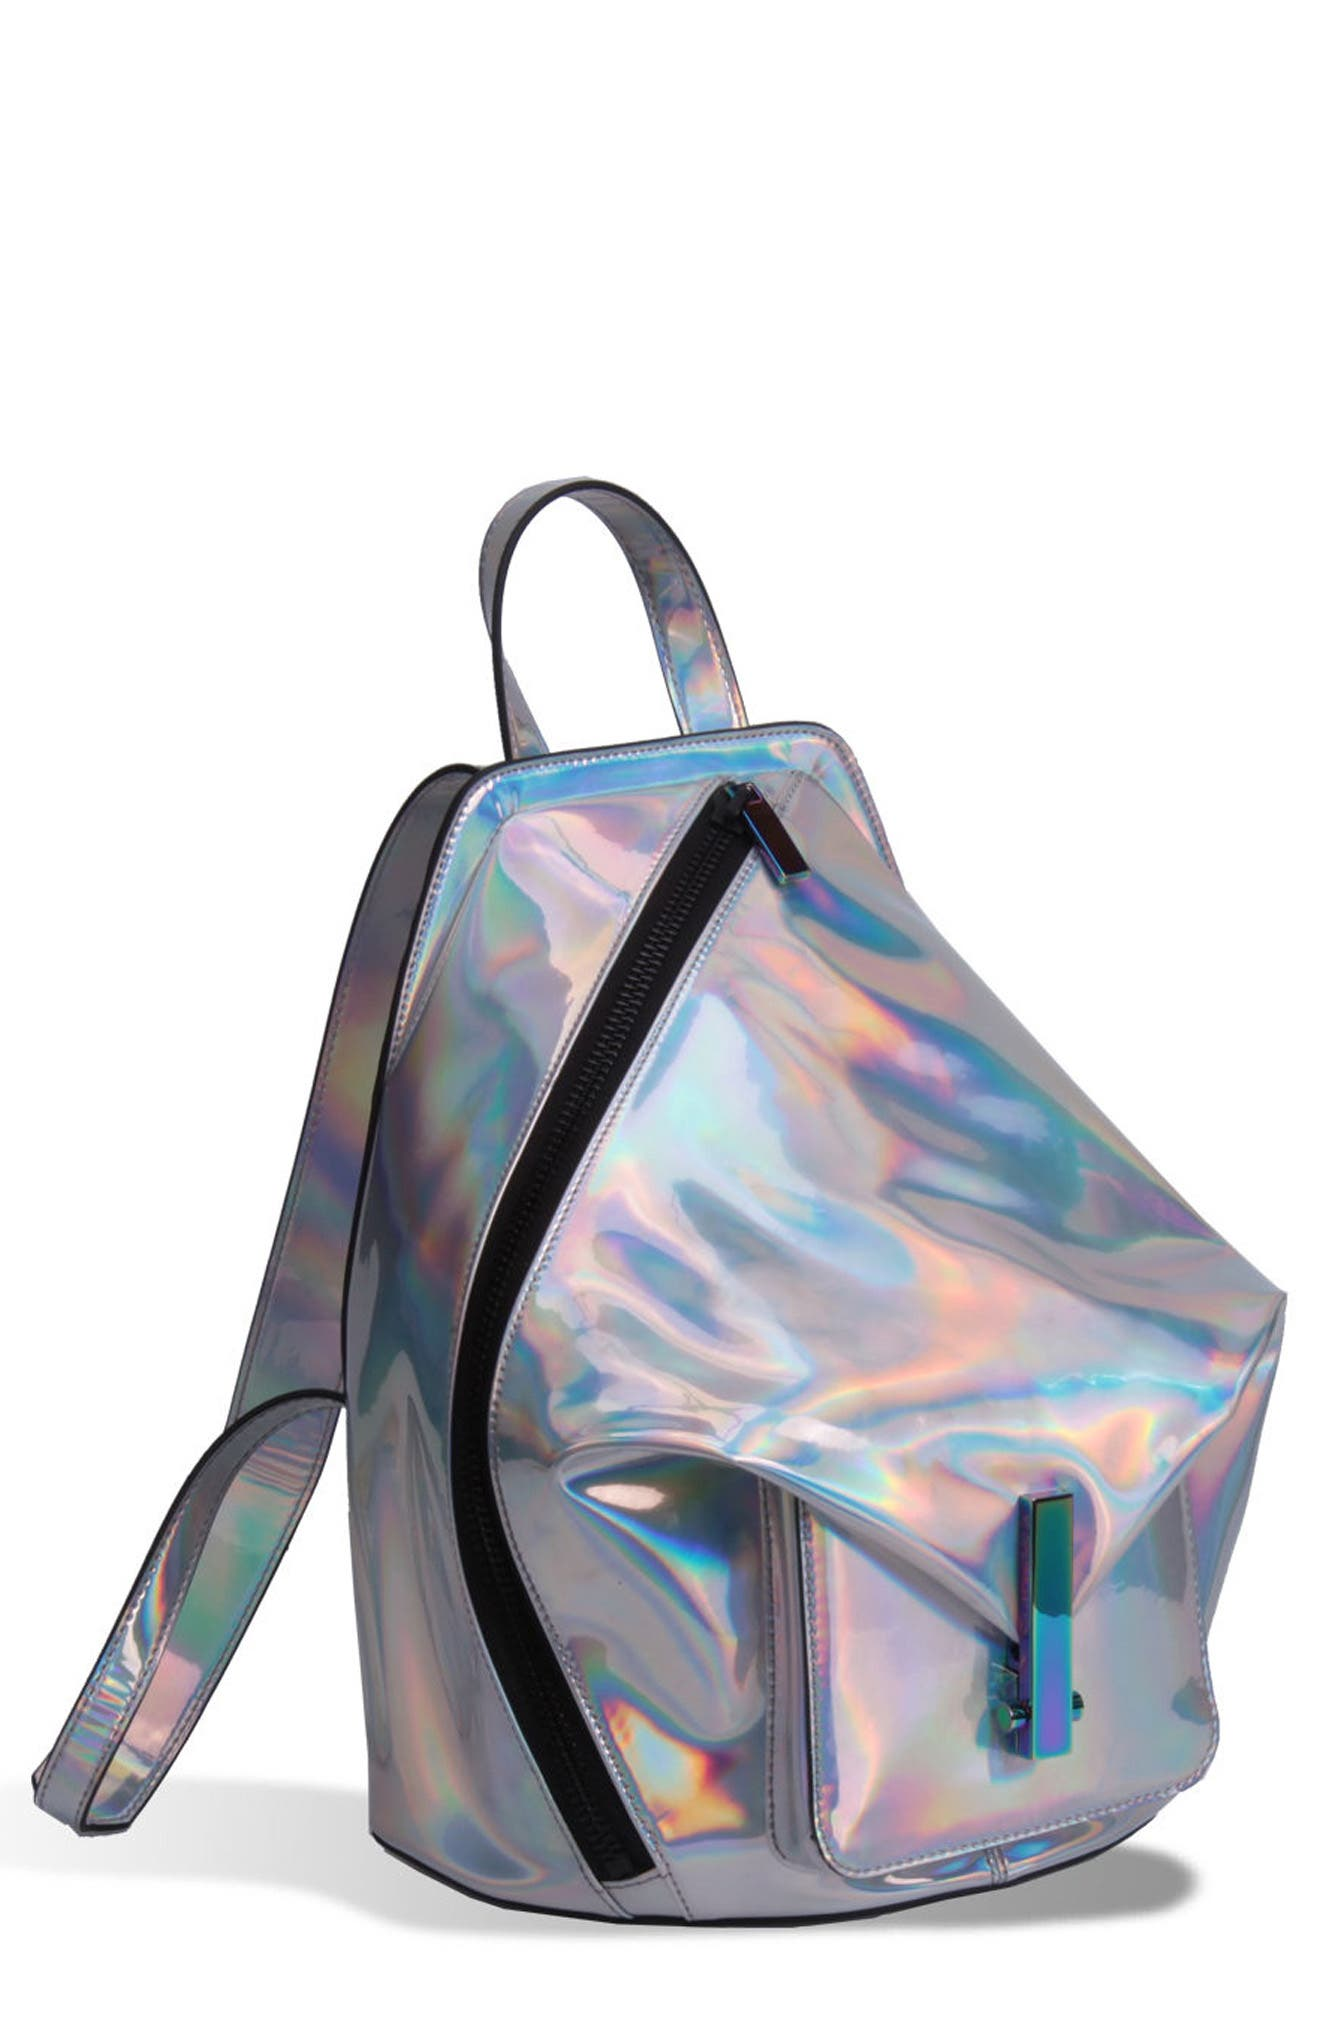 Koenji Leather Backpack,                             Main thumbnail 1, color,                             Silver Iridescent